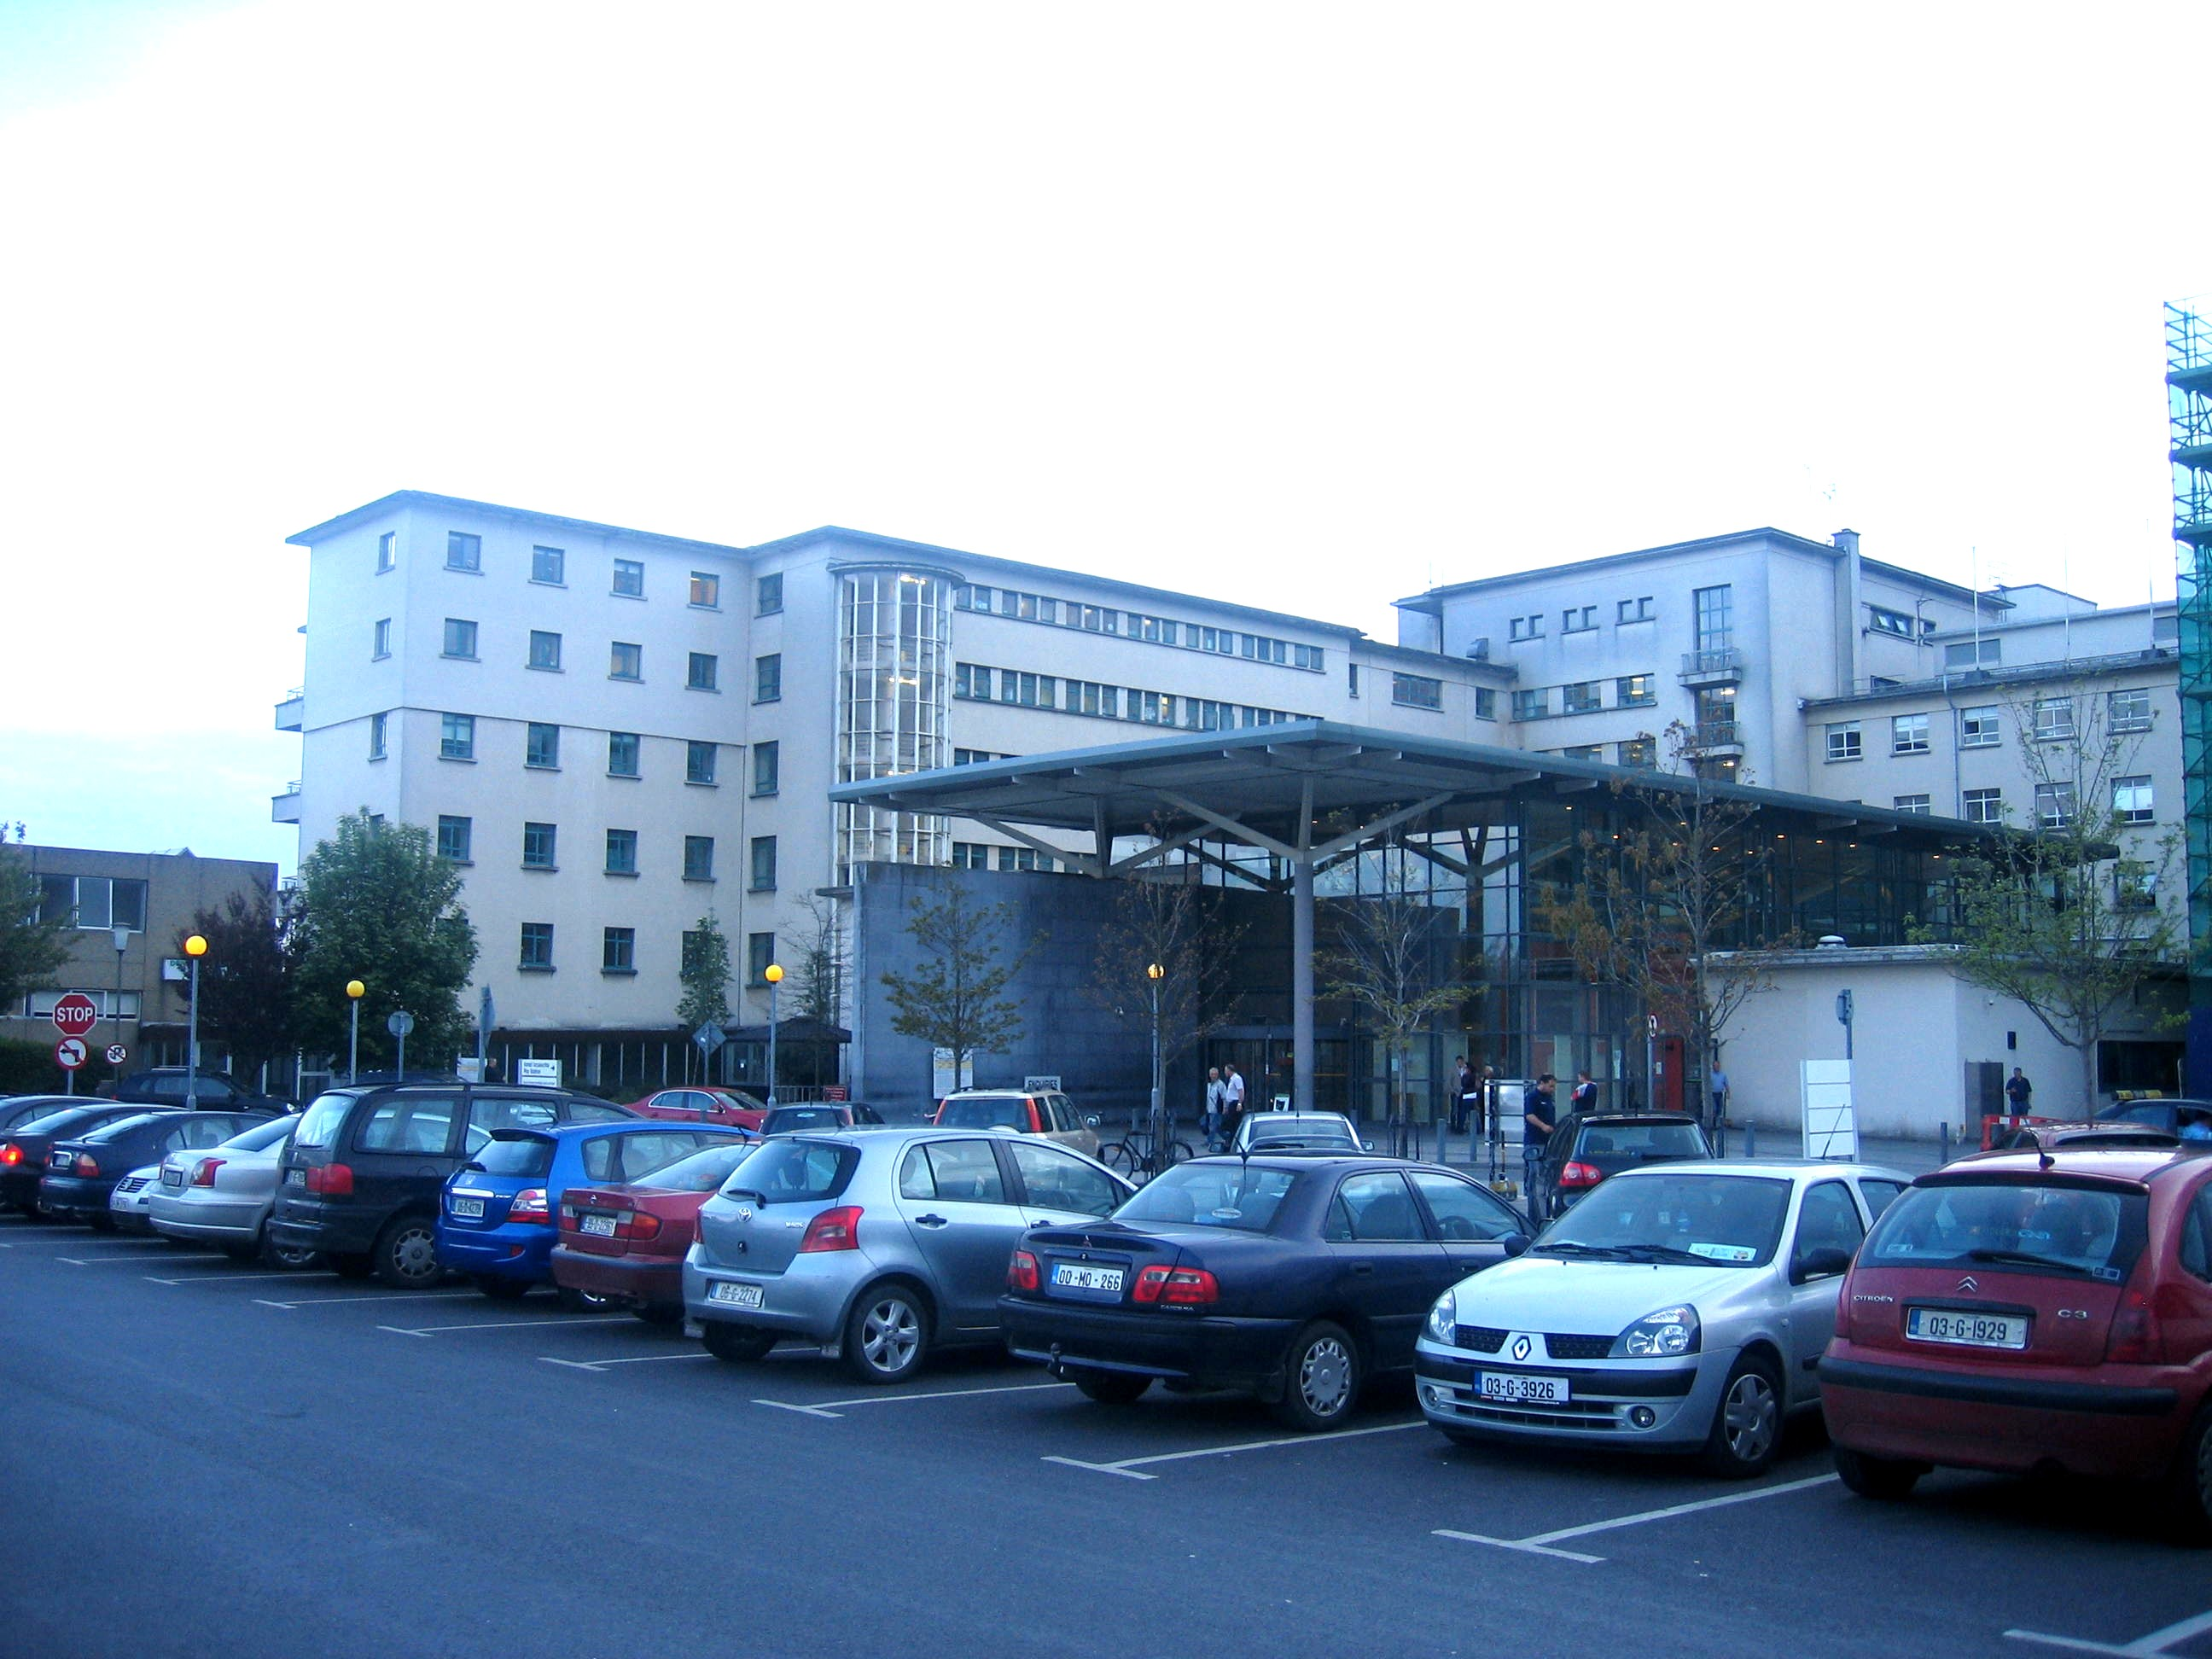 Calls for investigation into preventable deaths at Galway University Hospital